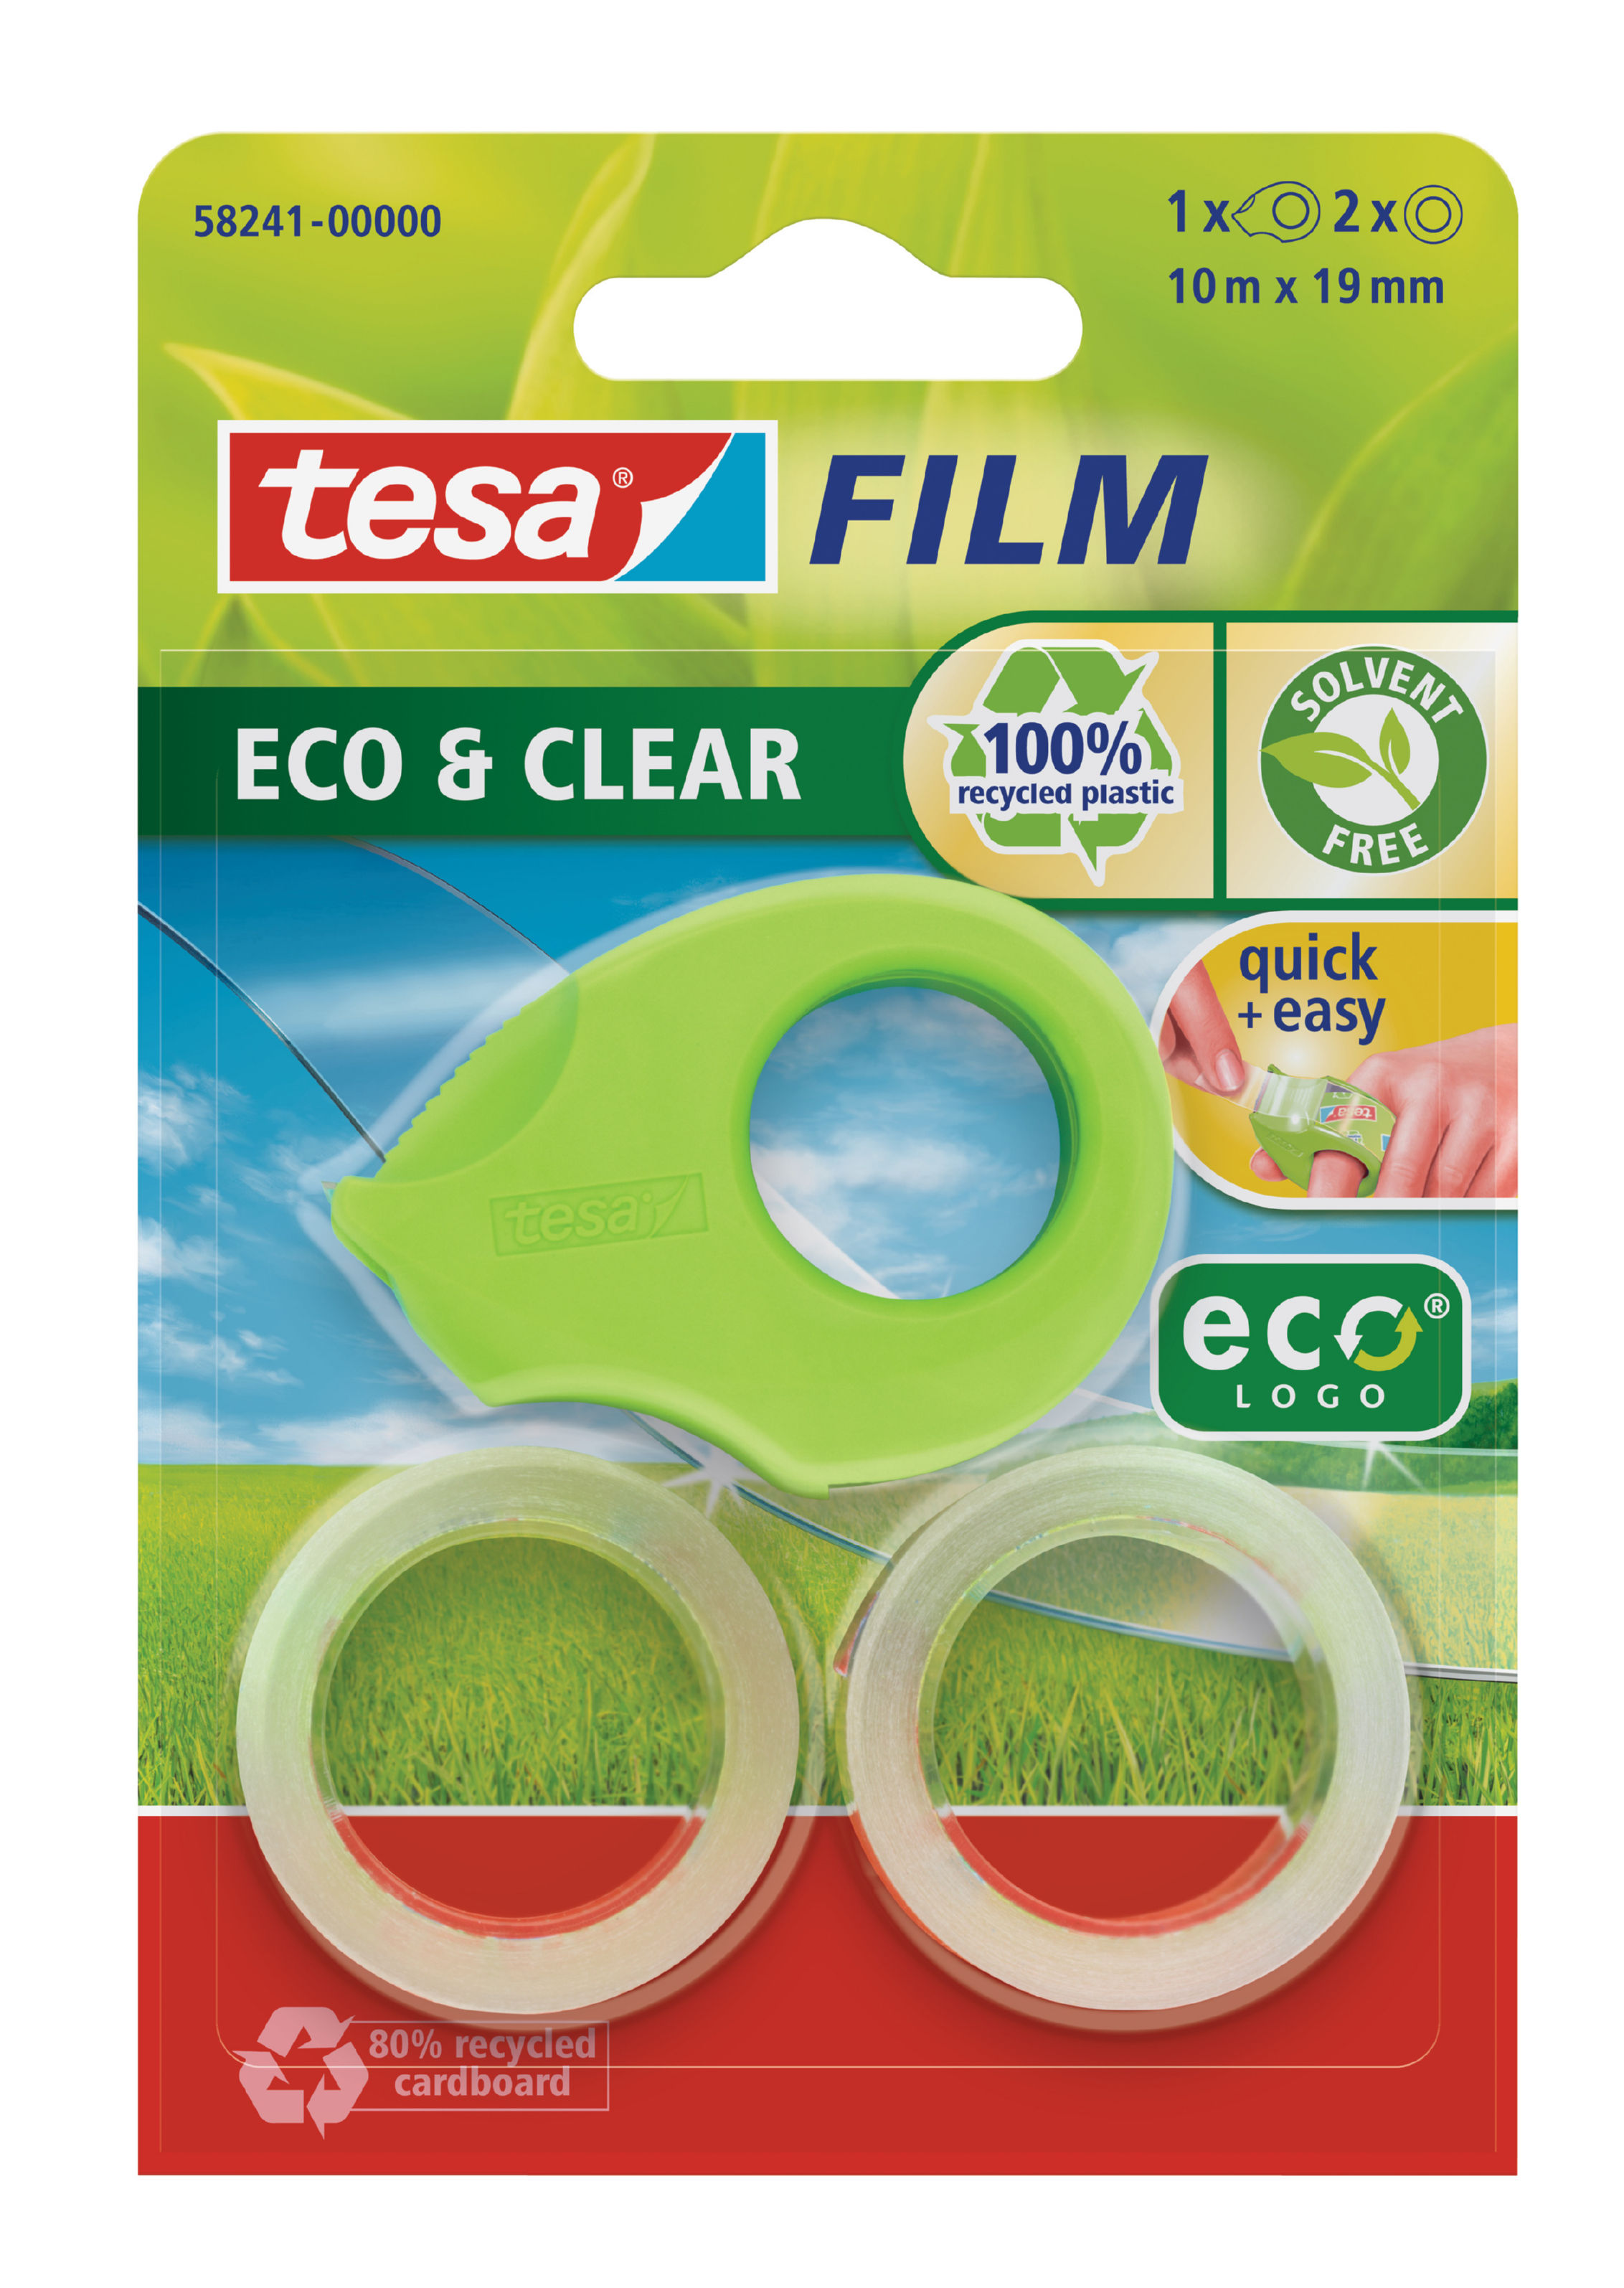 Glue Rollers tesafilm Mini Eco & Clear Dispenser With 2 rolls 19mmx10M Green